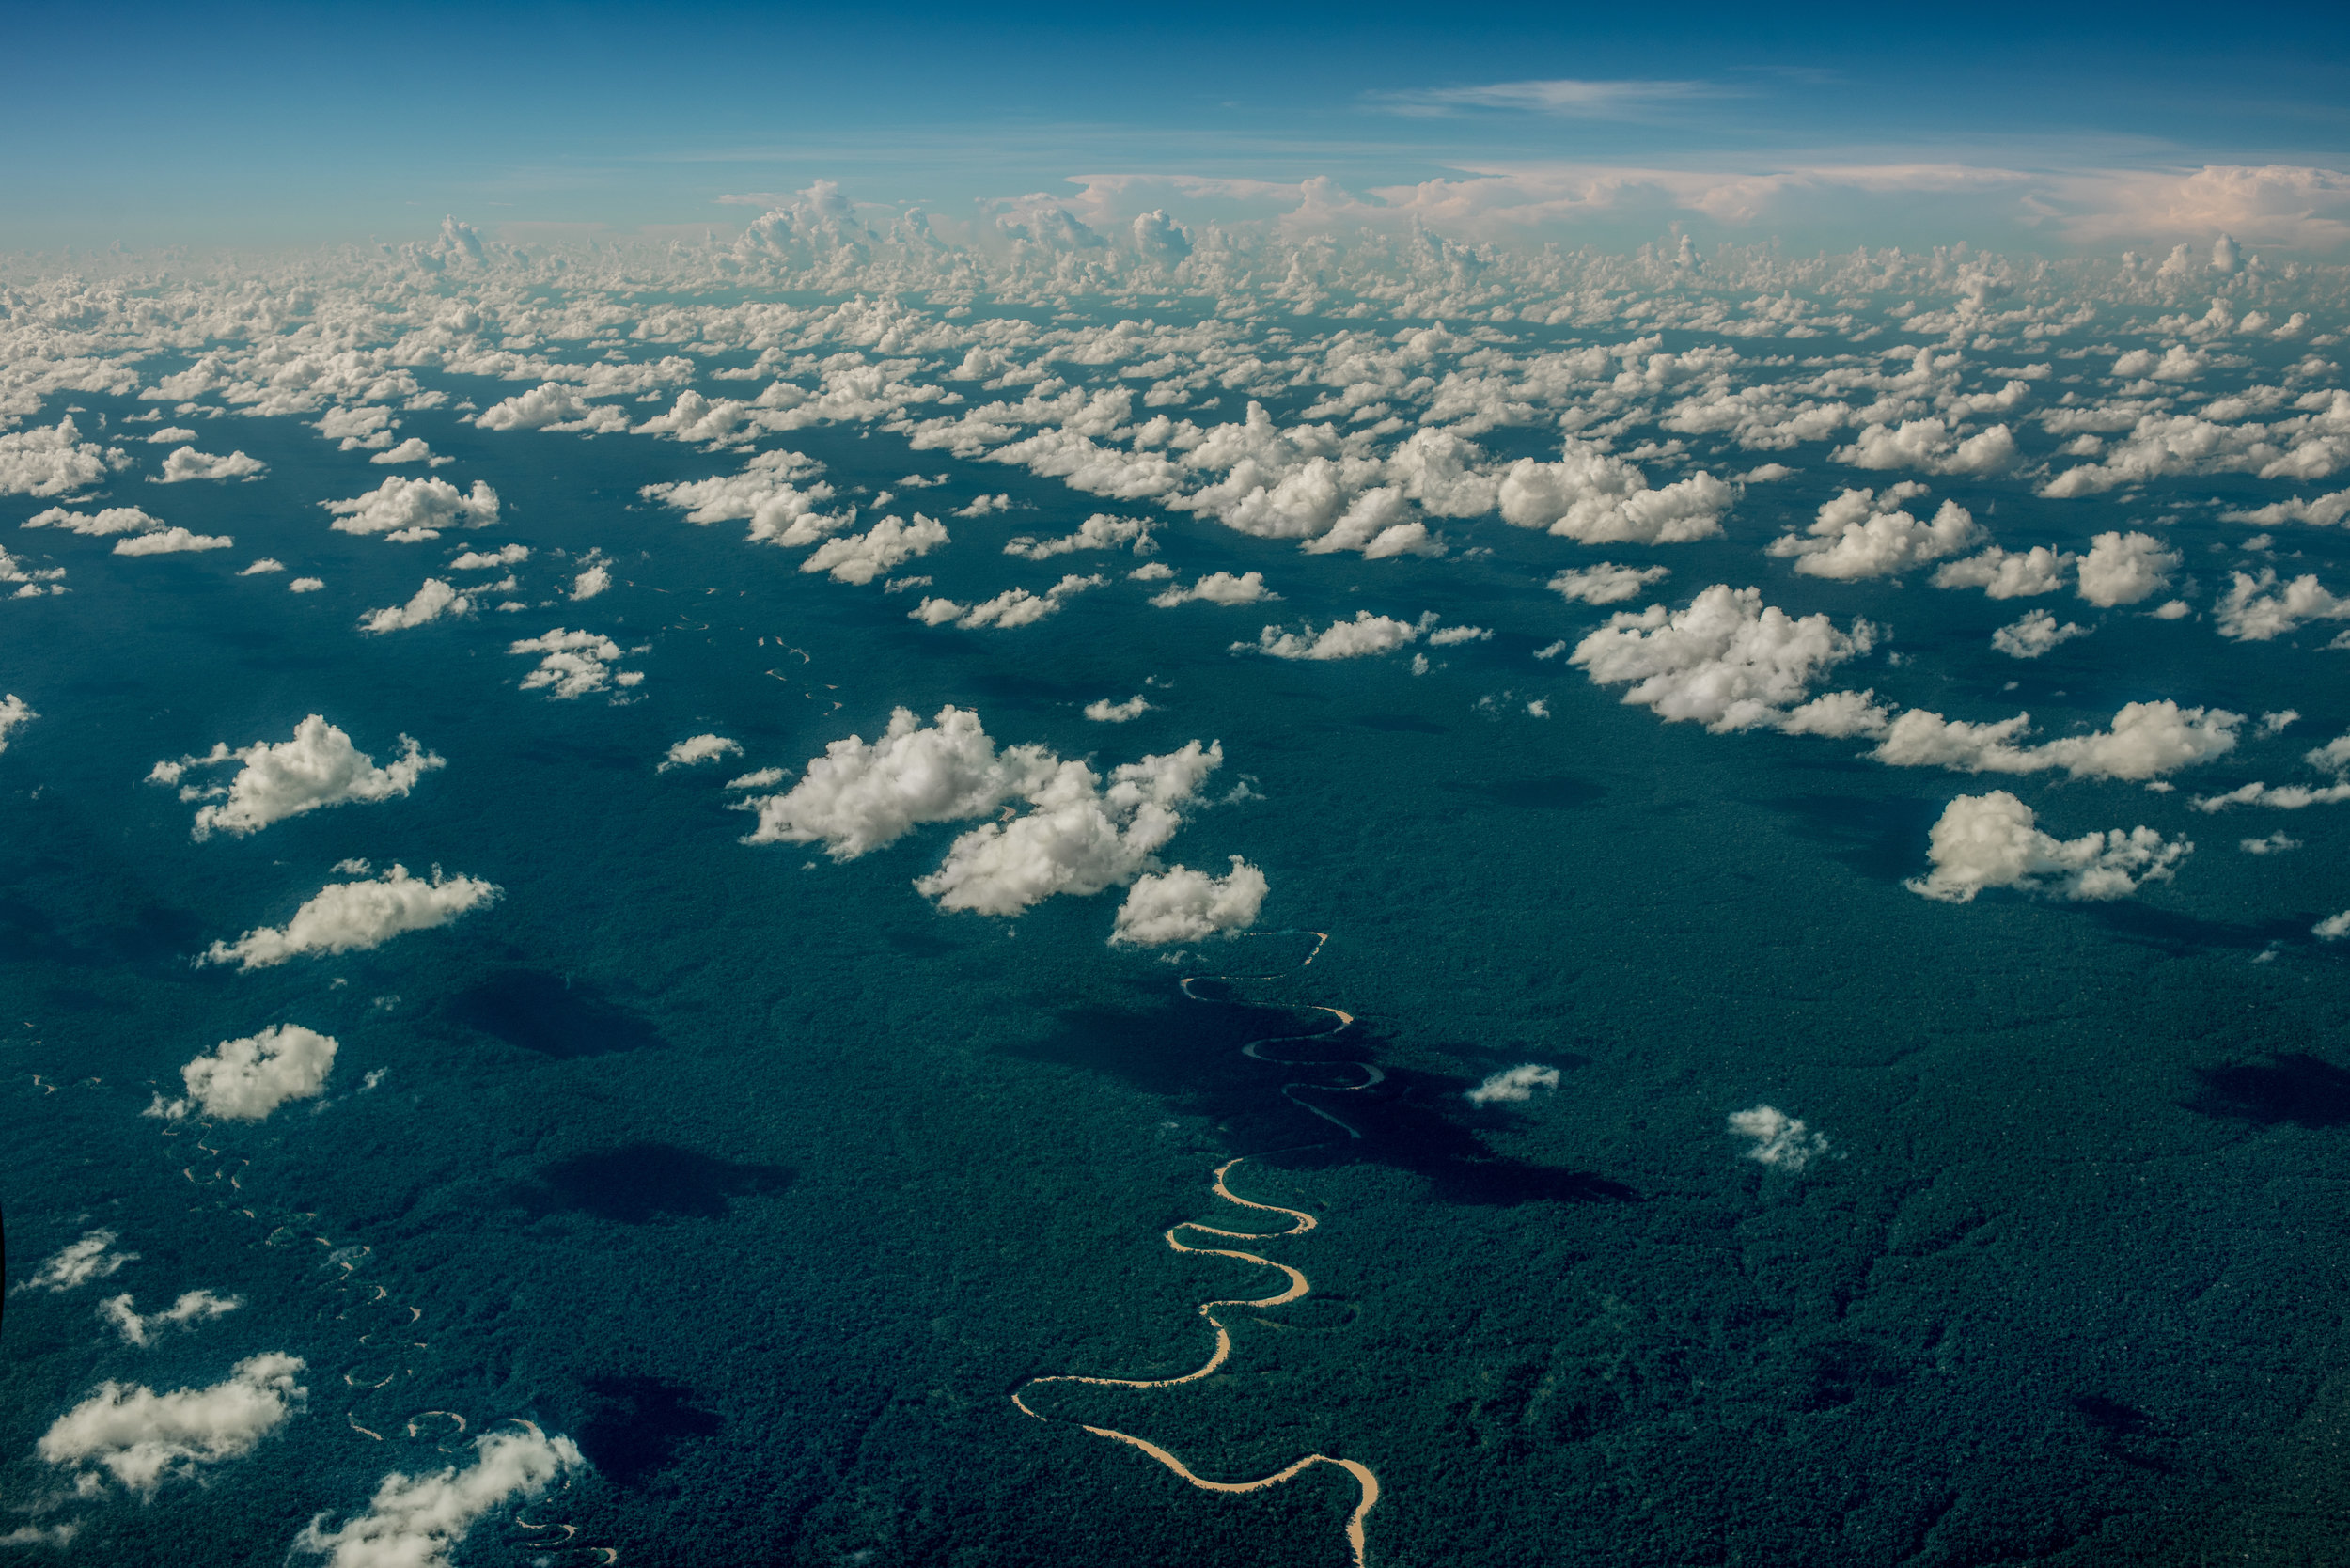 Photograph by Rochi León courtesy of Amazon Aid Foundation.